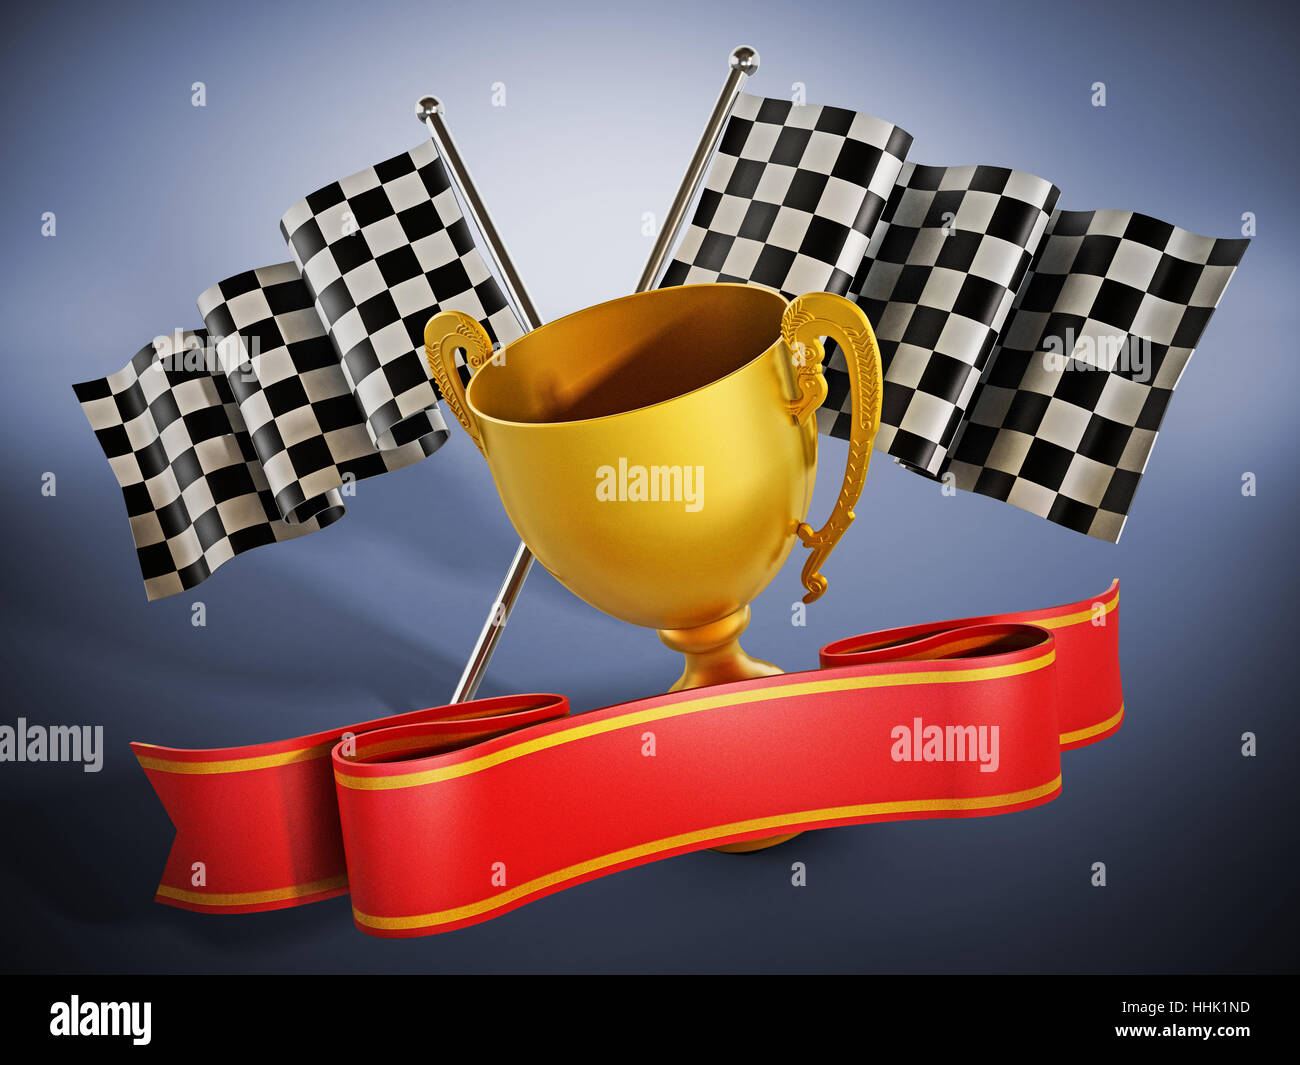 Gold cup, checkered flags and red ribbon. 3D illustration. - Stock Image